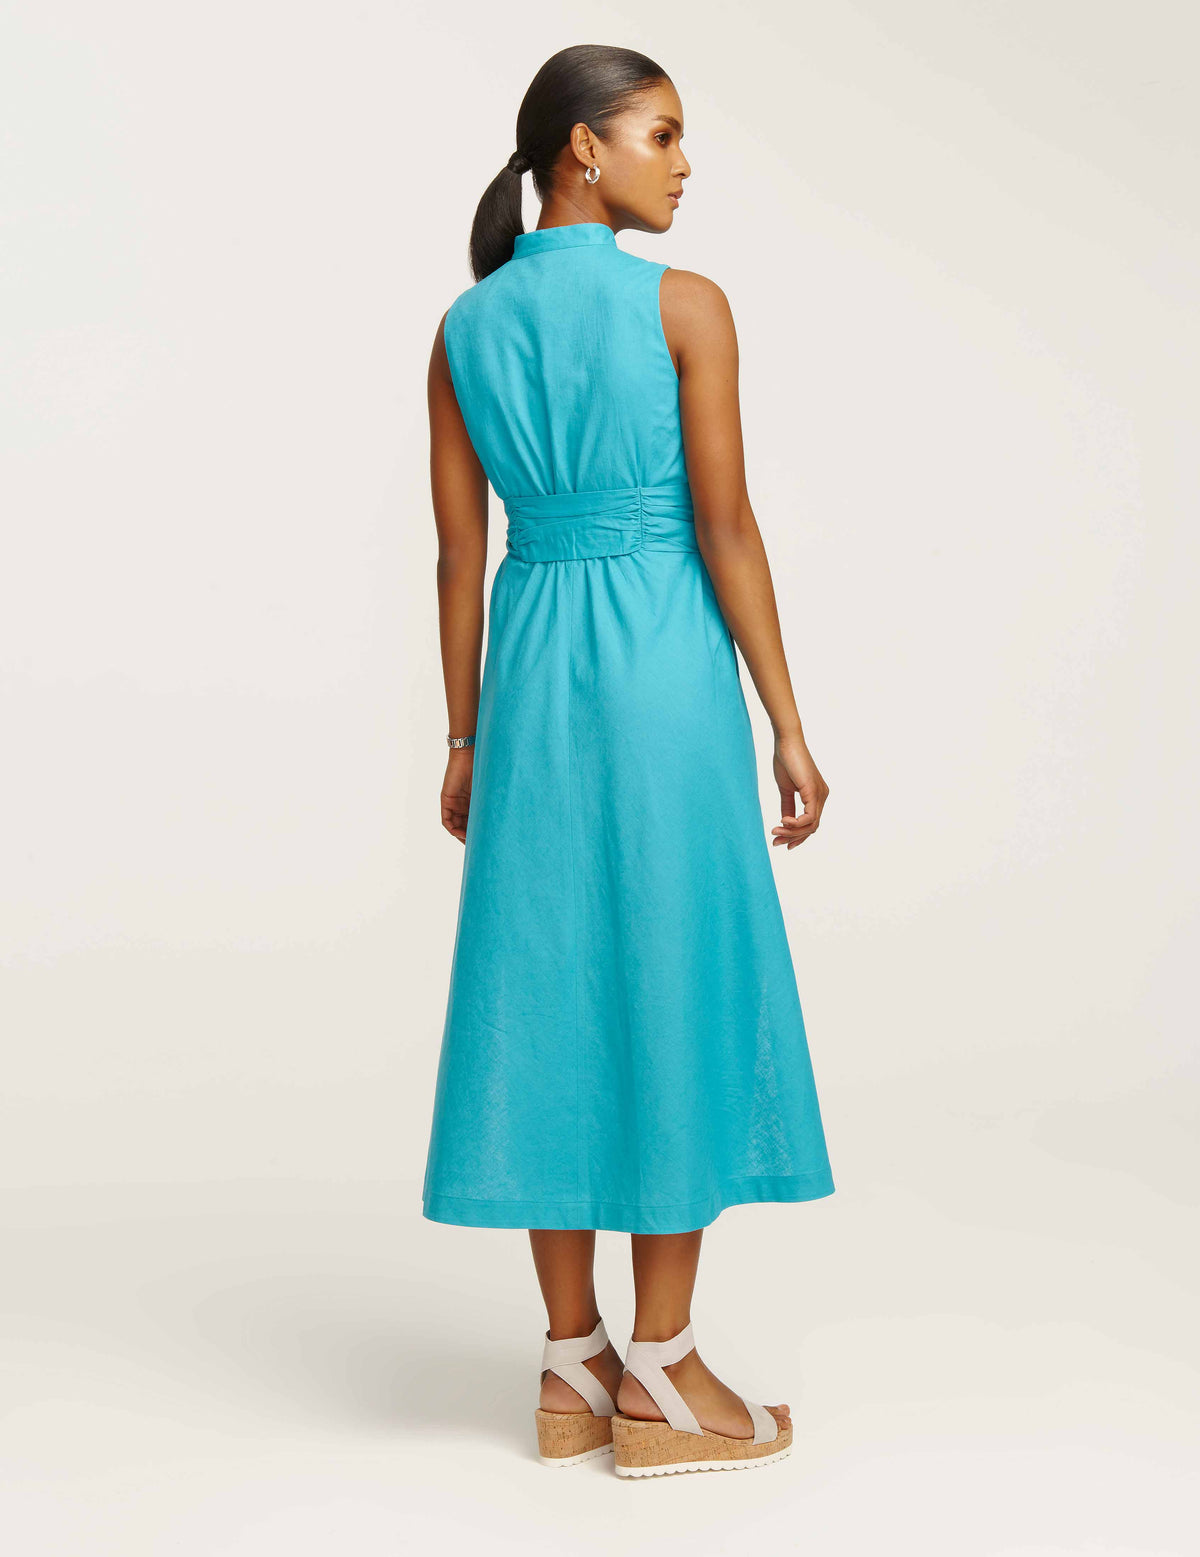 Linen Midi Dress with Attached Sash